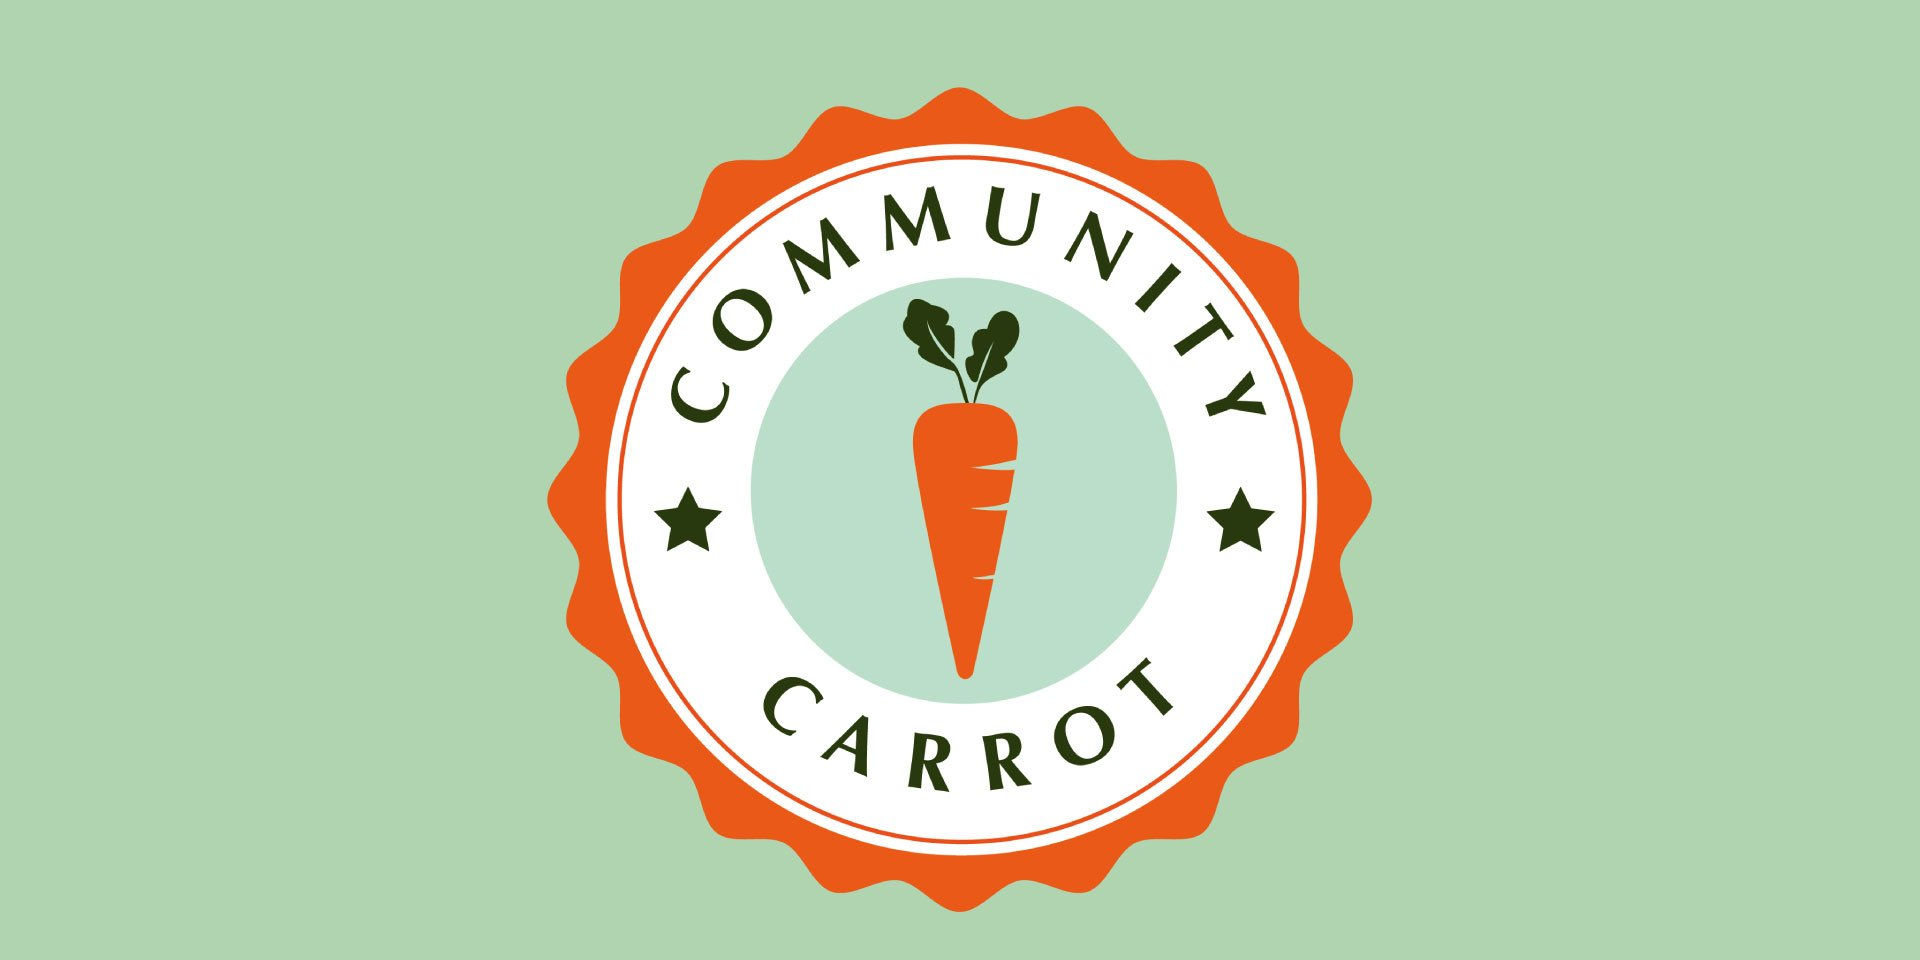 Community Carrot logo